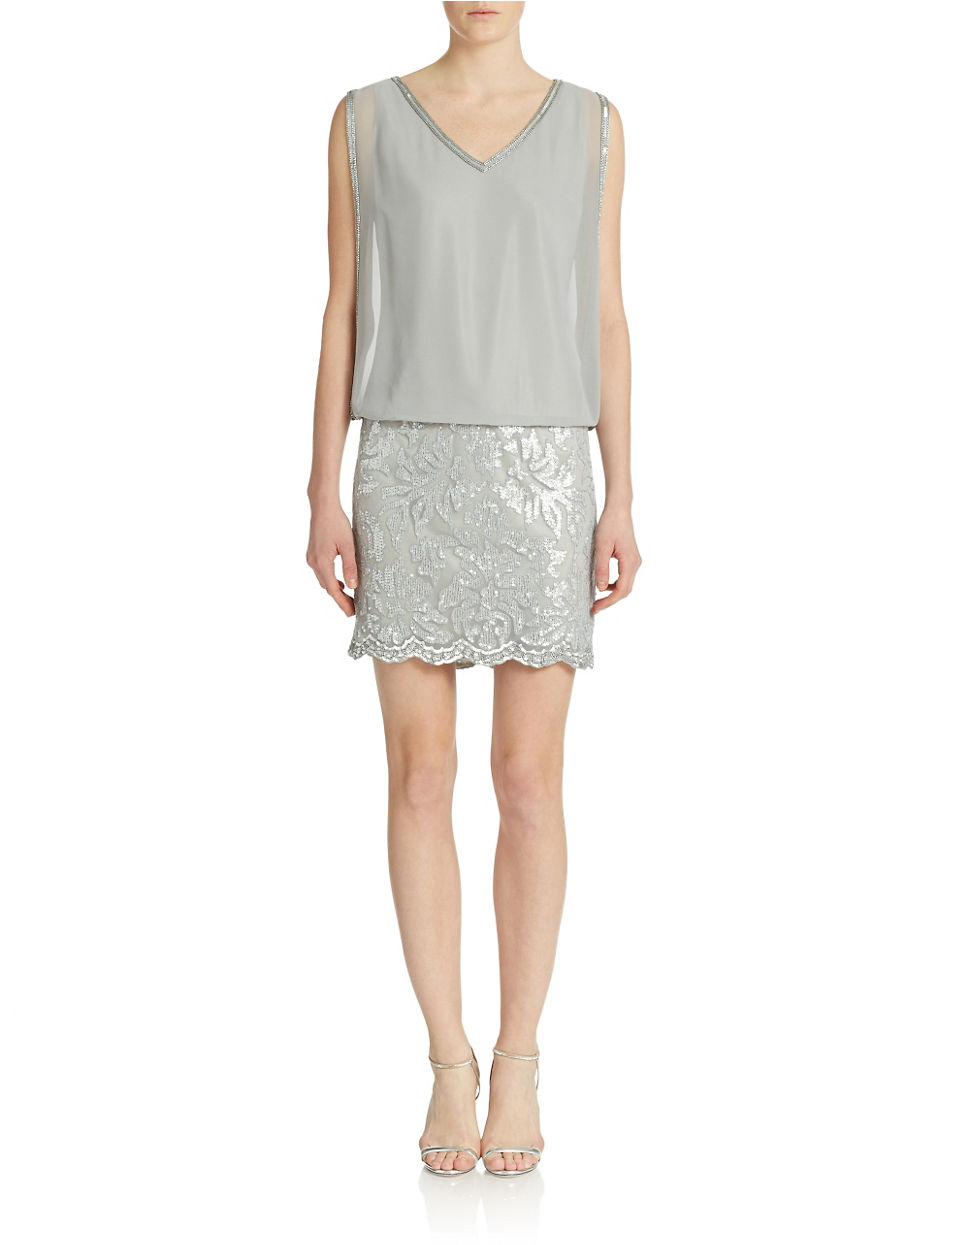 40c87587823 J Kara Sequin Embroidered Chiffon Blouson Dress in Gray - Lyst